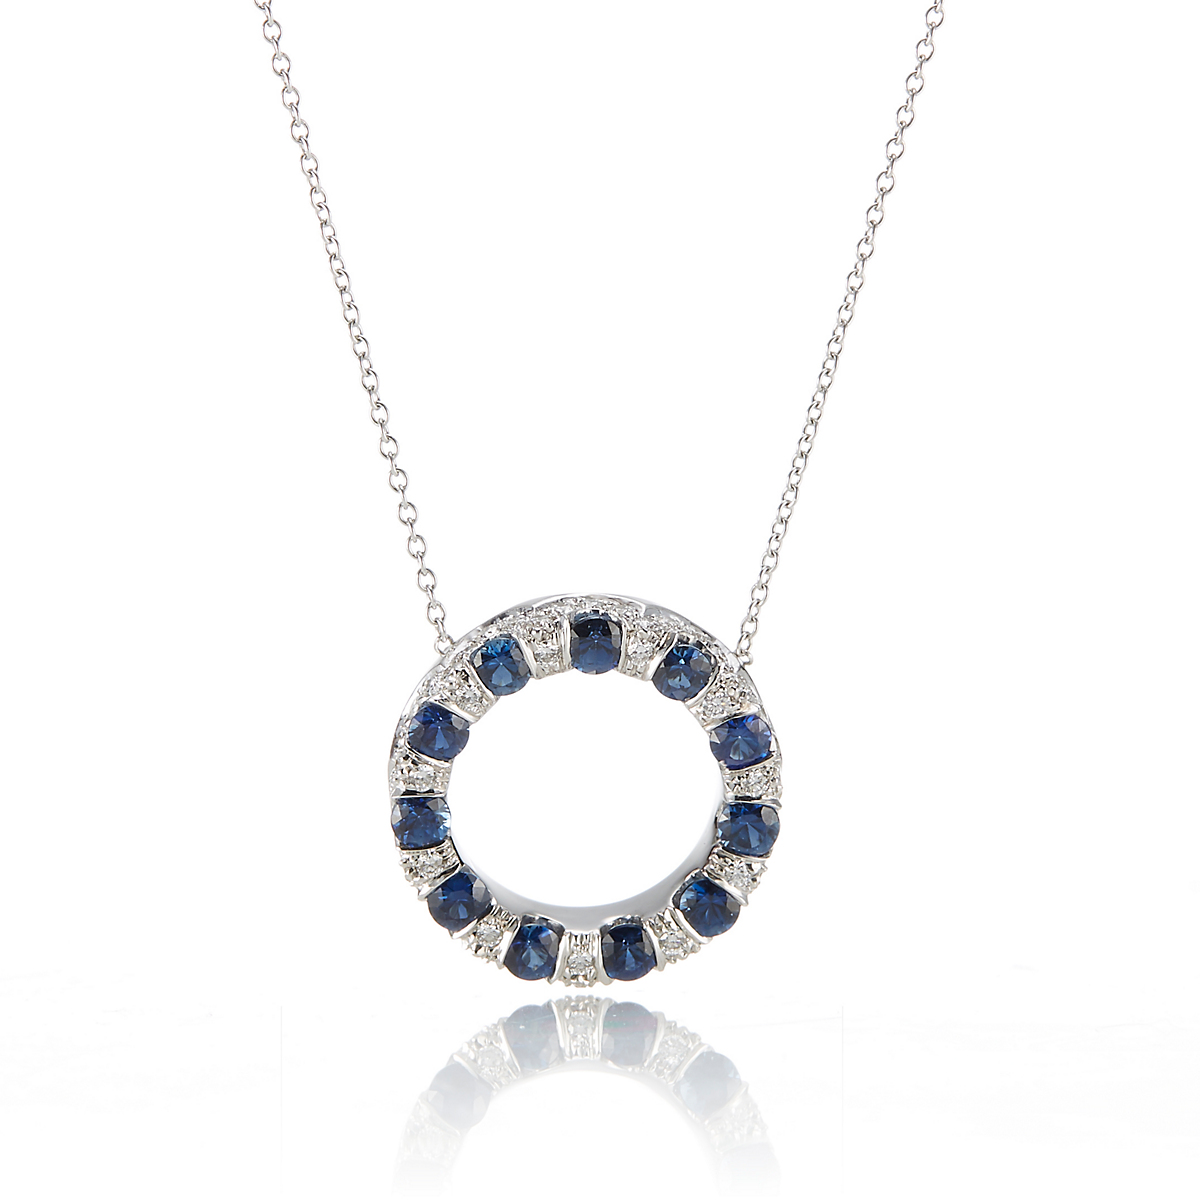 Carelle Diamond & Sapphire Large Circle Carizma Pendant Necklace